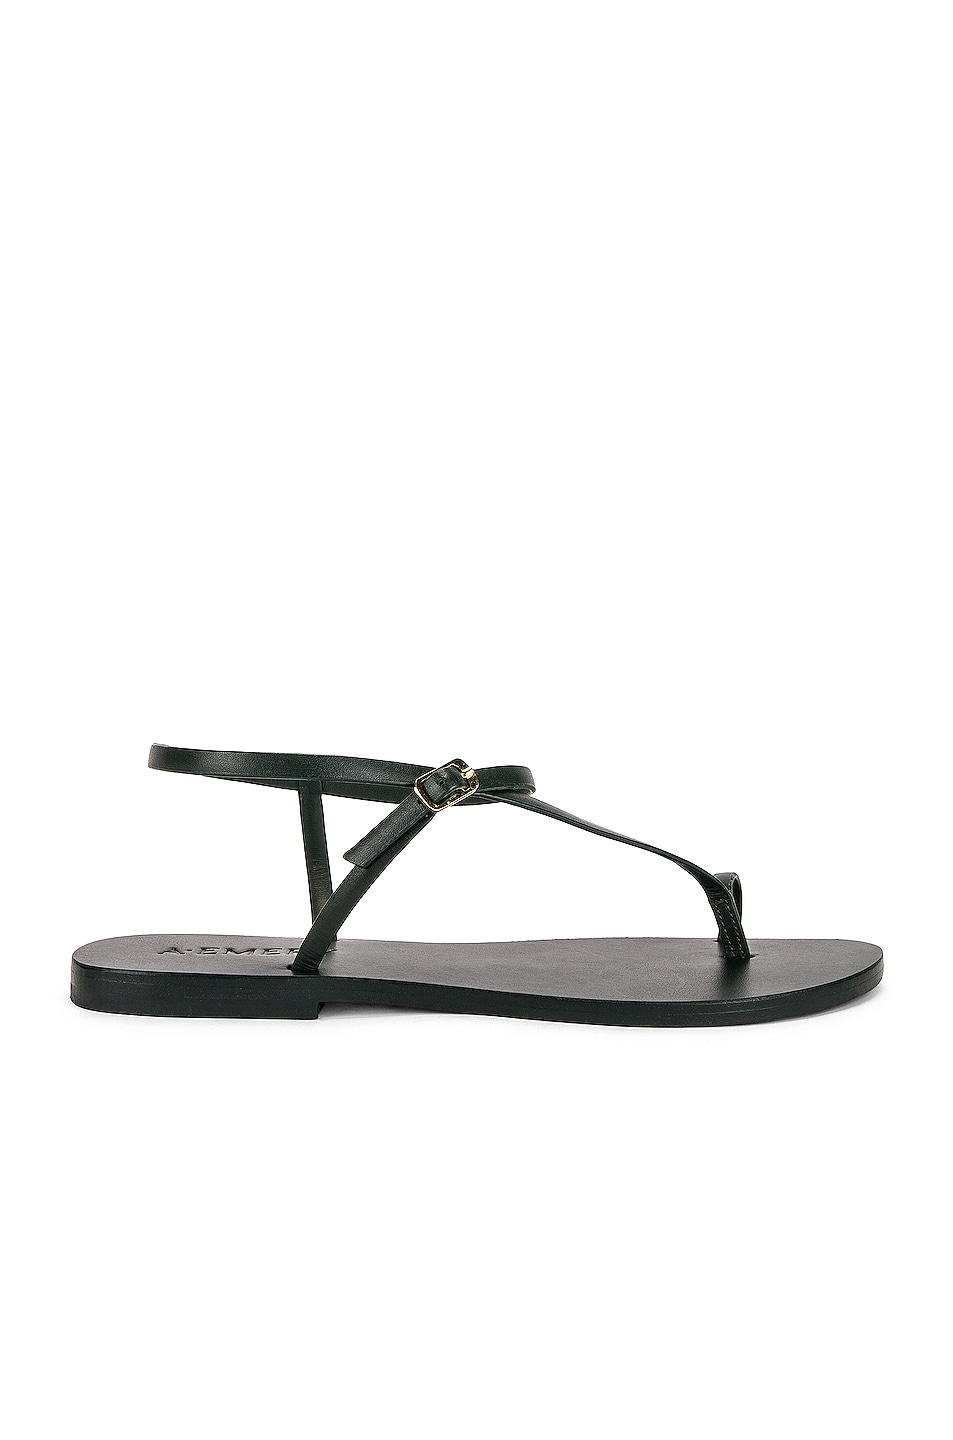 Image 1 of A.EMERY Lily Sandal in Forest Green